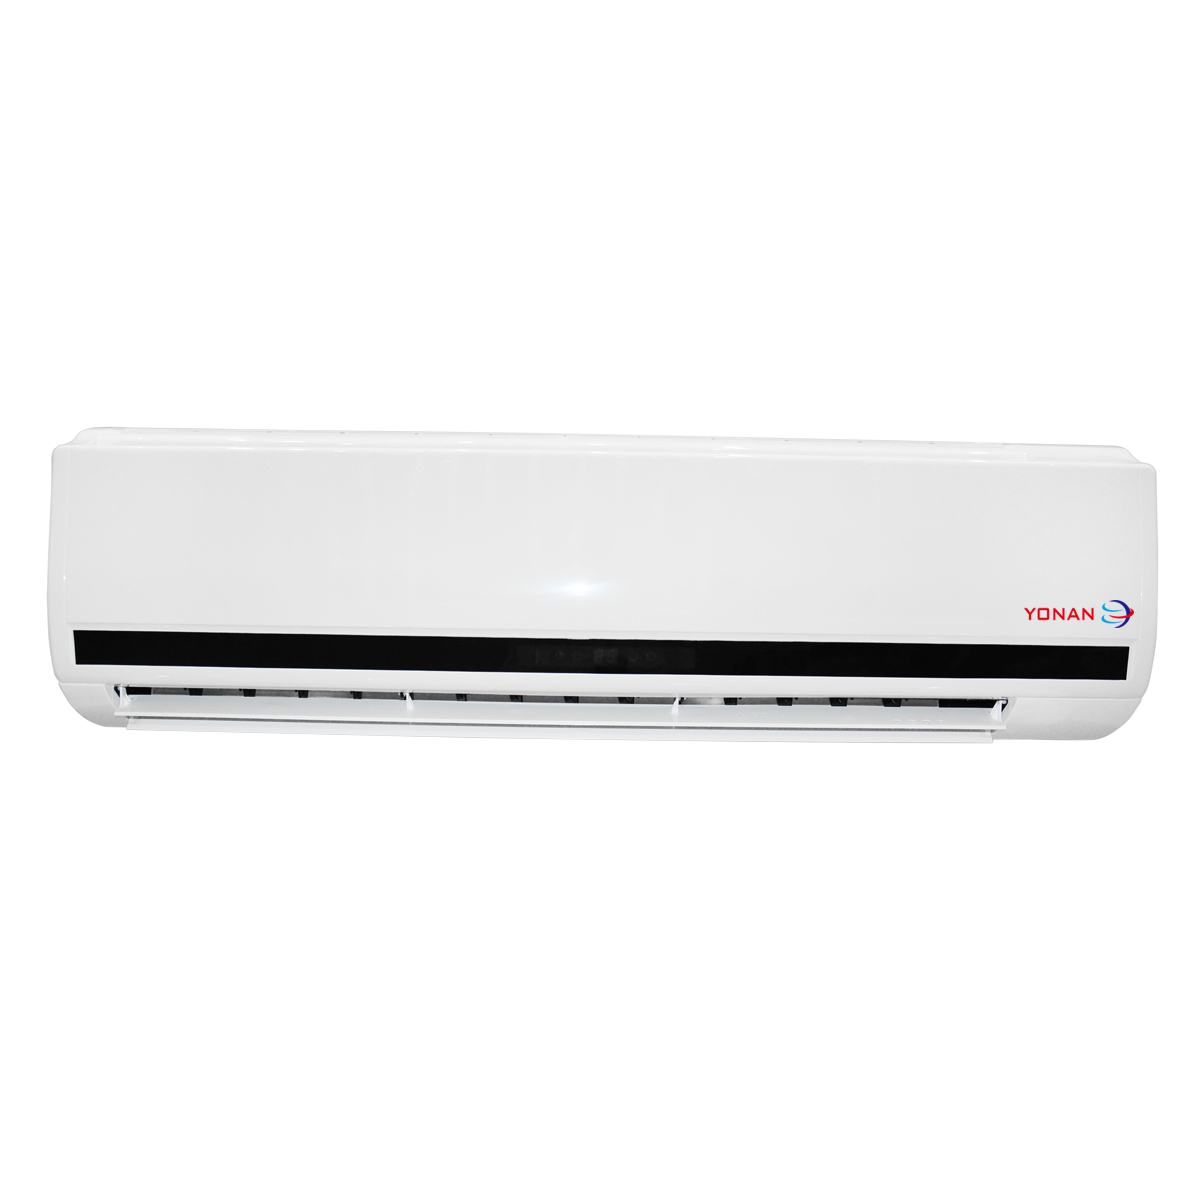 Air Conditioners New And Demo Available Sold Directly to You